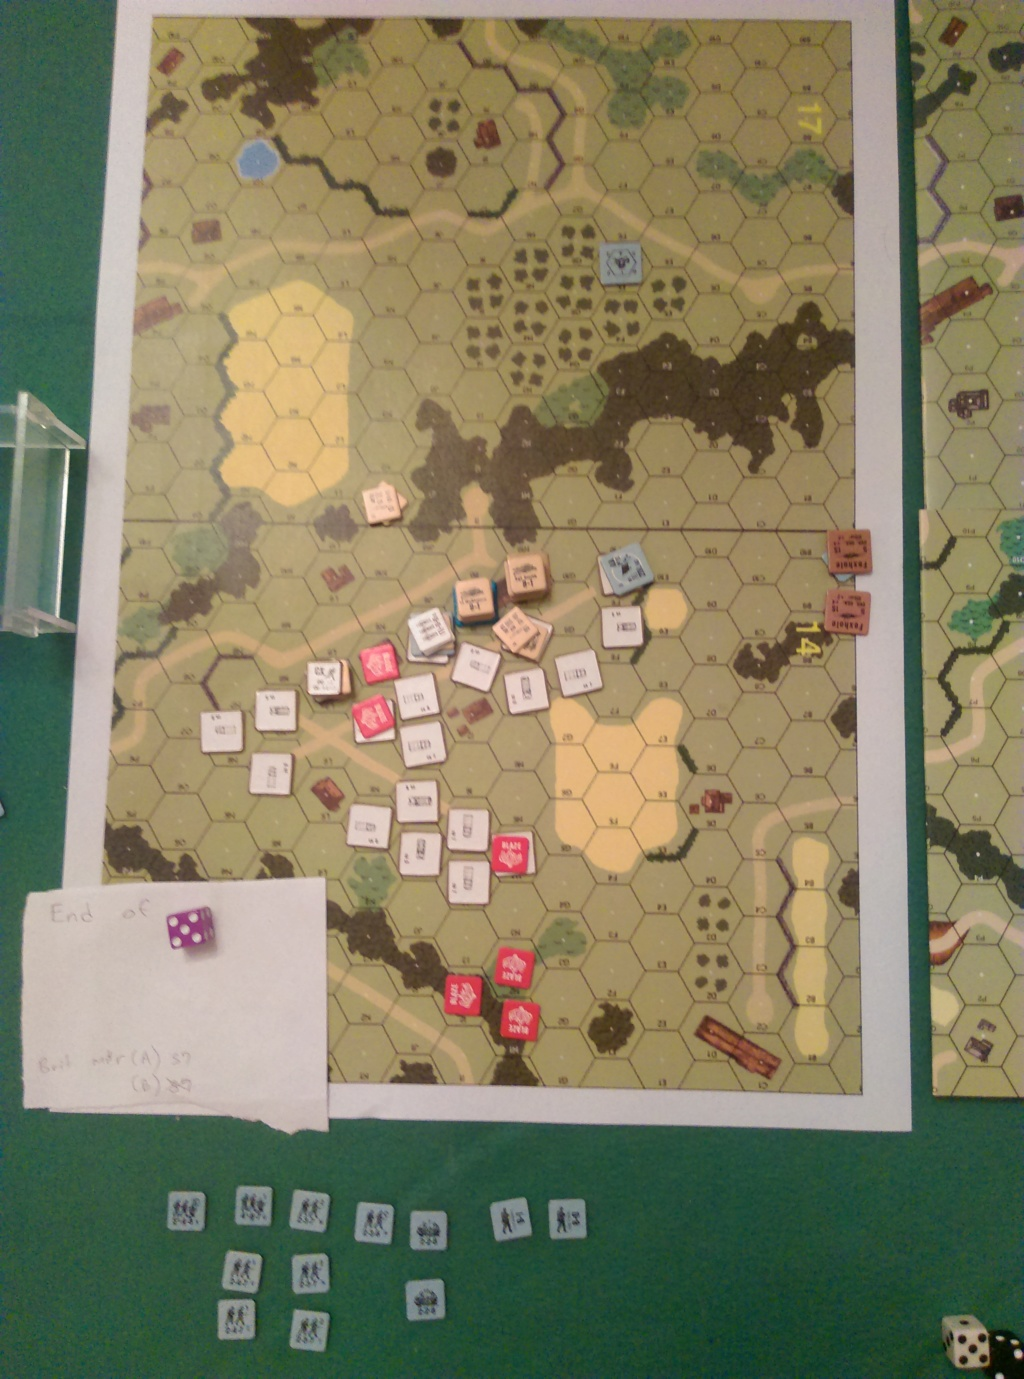 ASL Action In Wugu. ASL-188 and OA-019 (John vs Little Wolf) Oa-01915